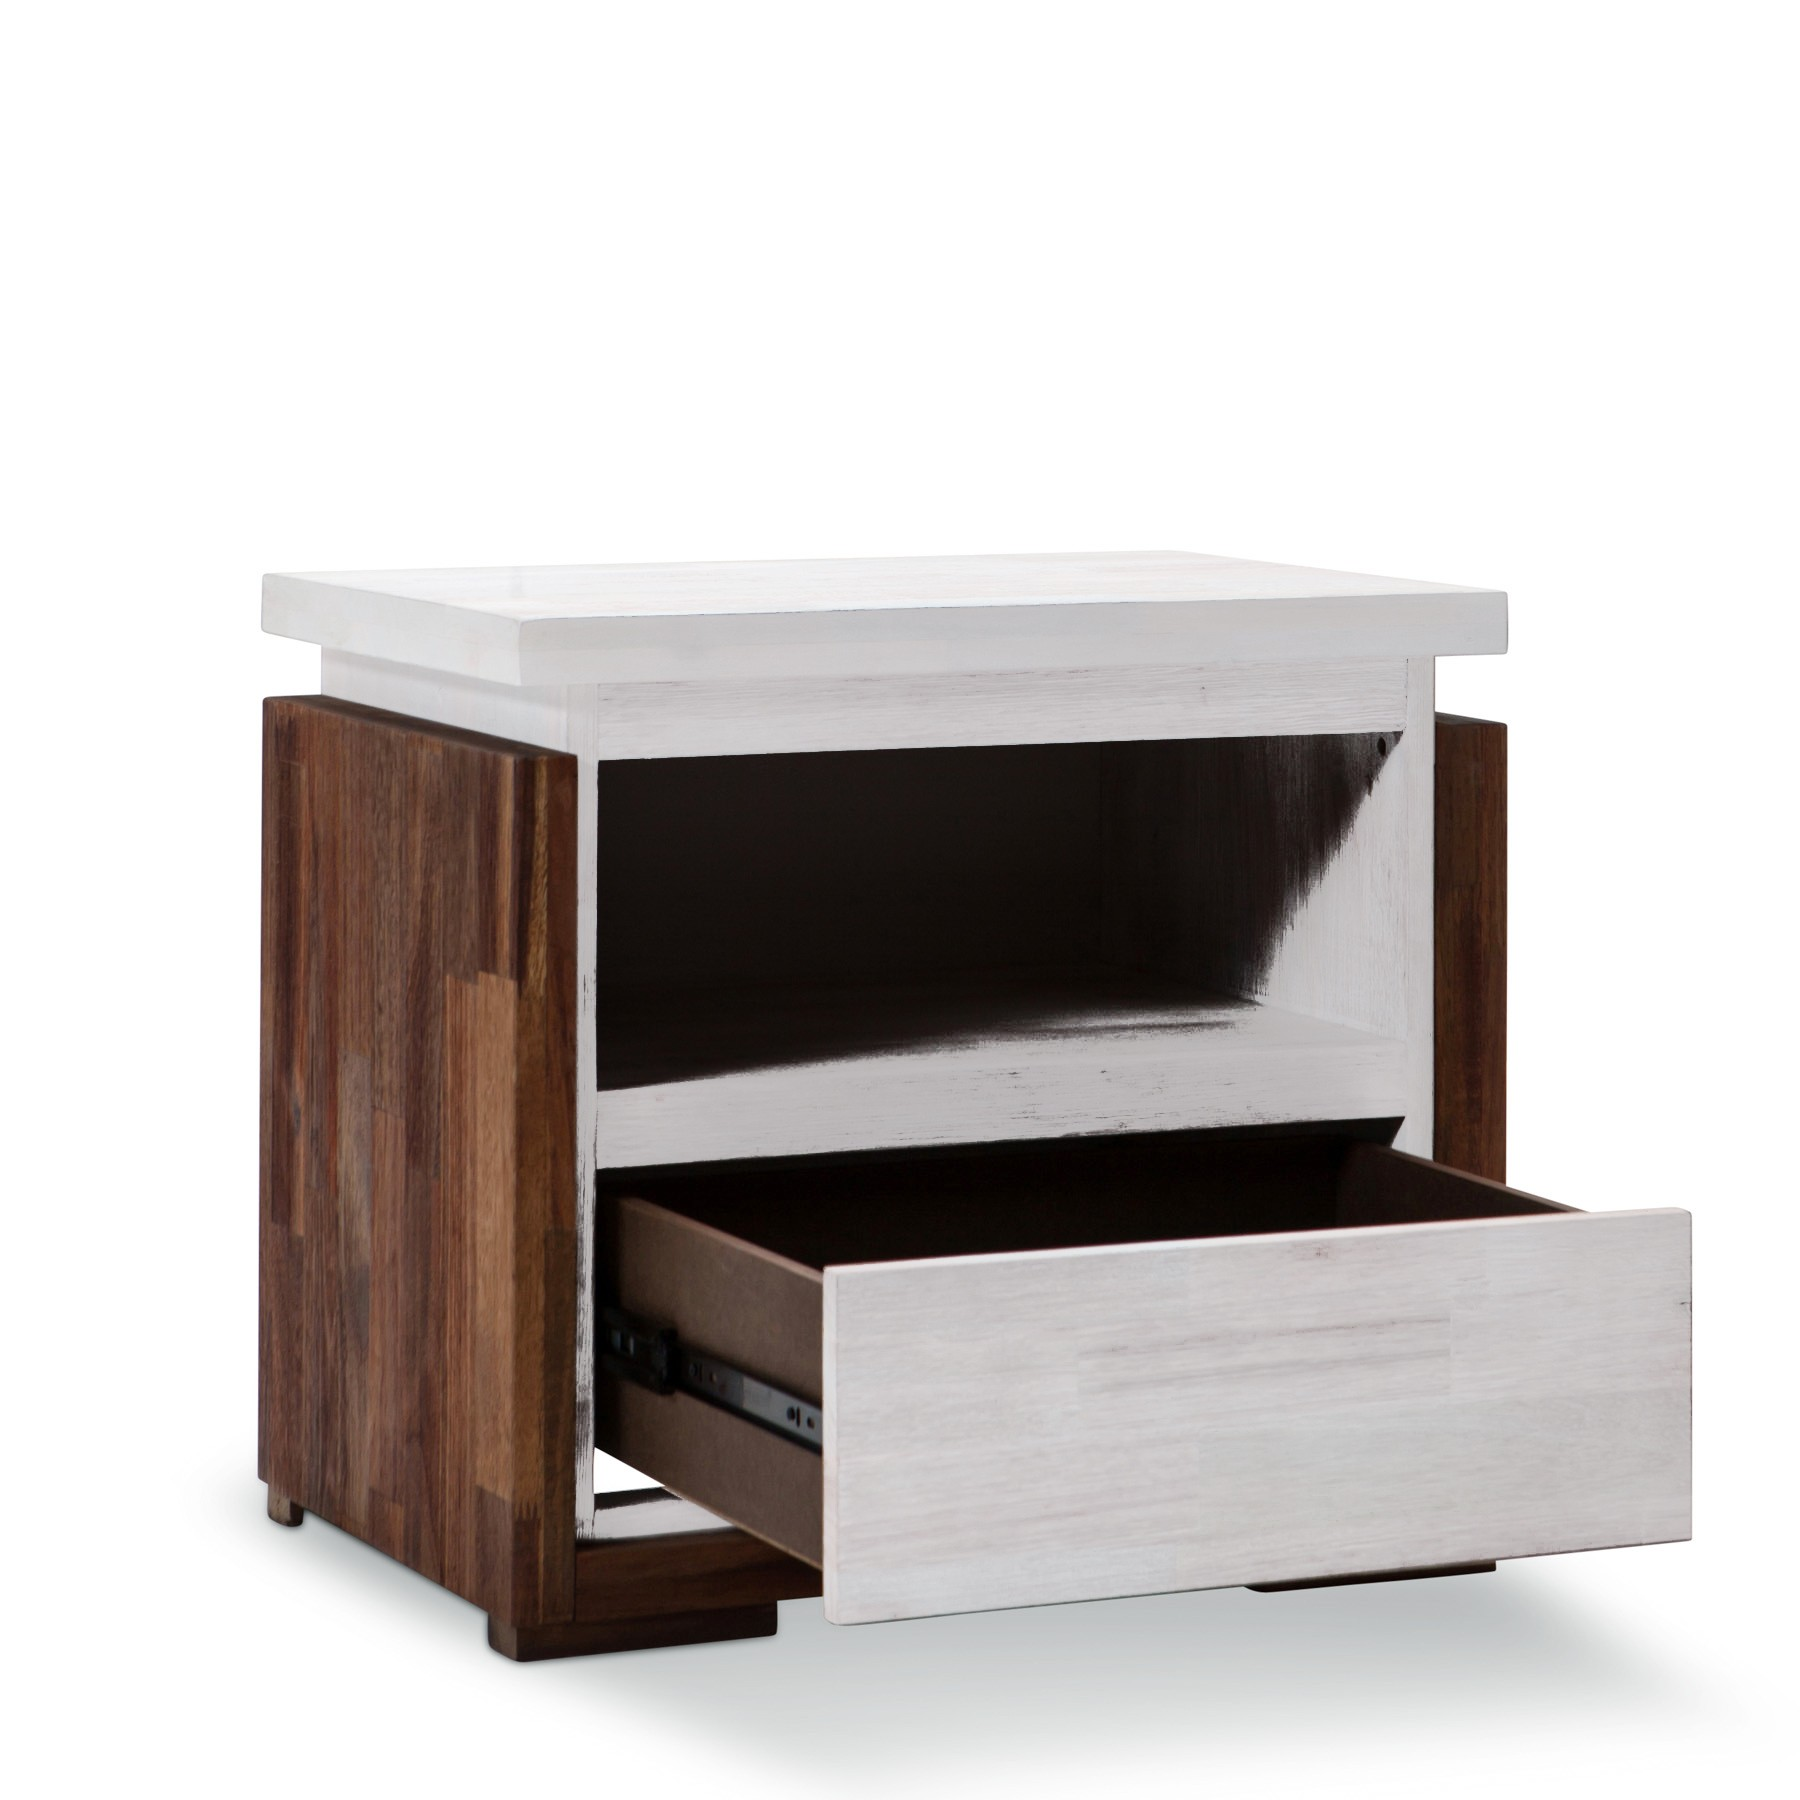 Catalina Brand New Solid Rubber Wood Bedside Table With